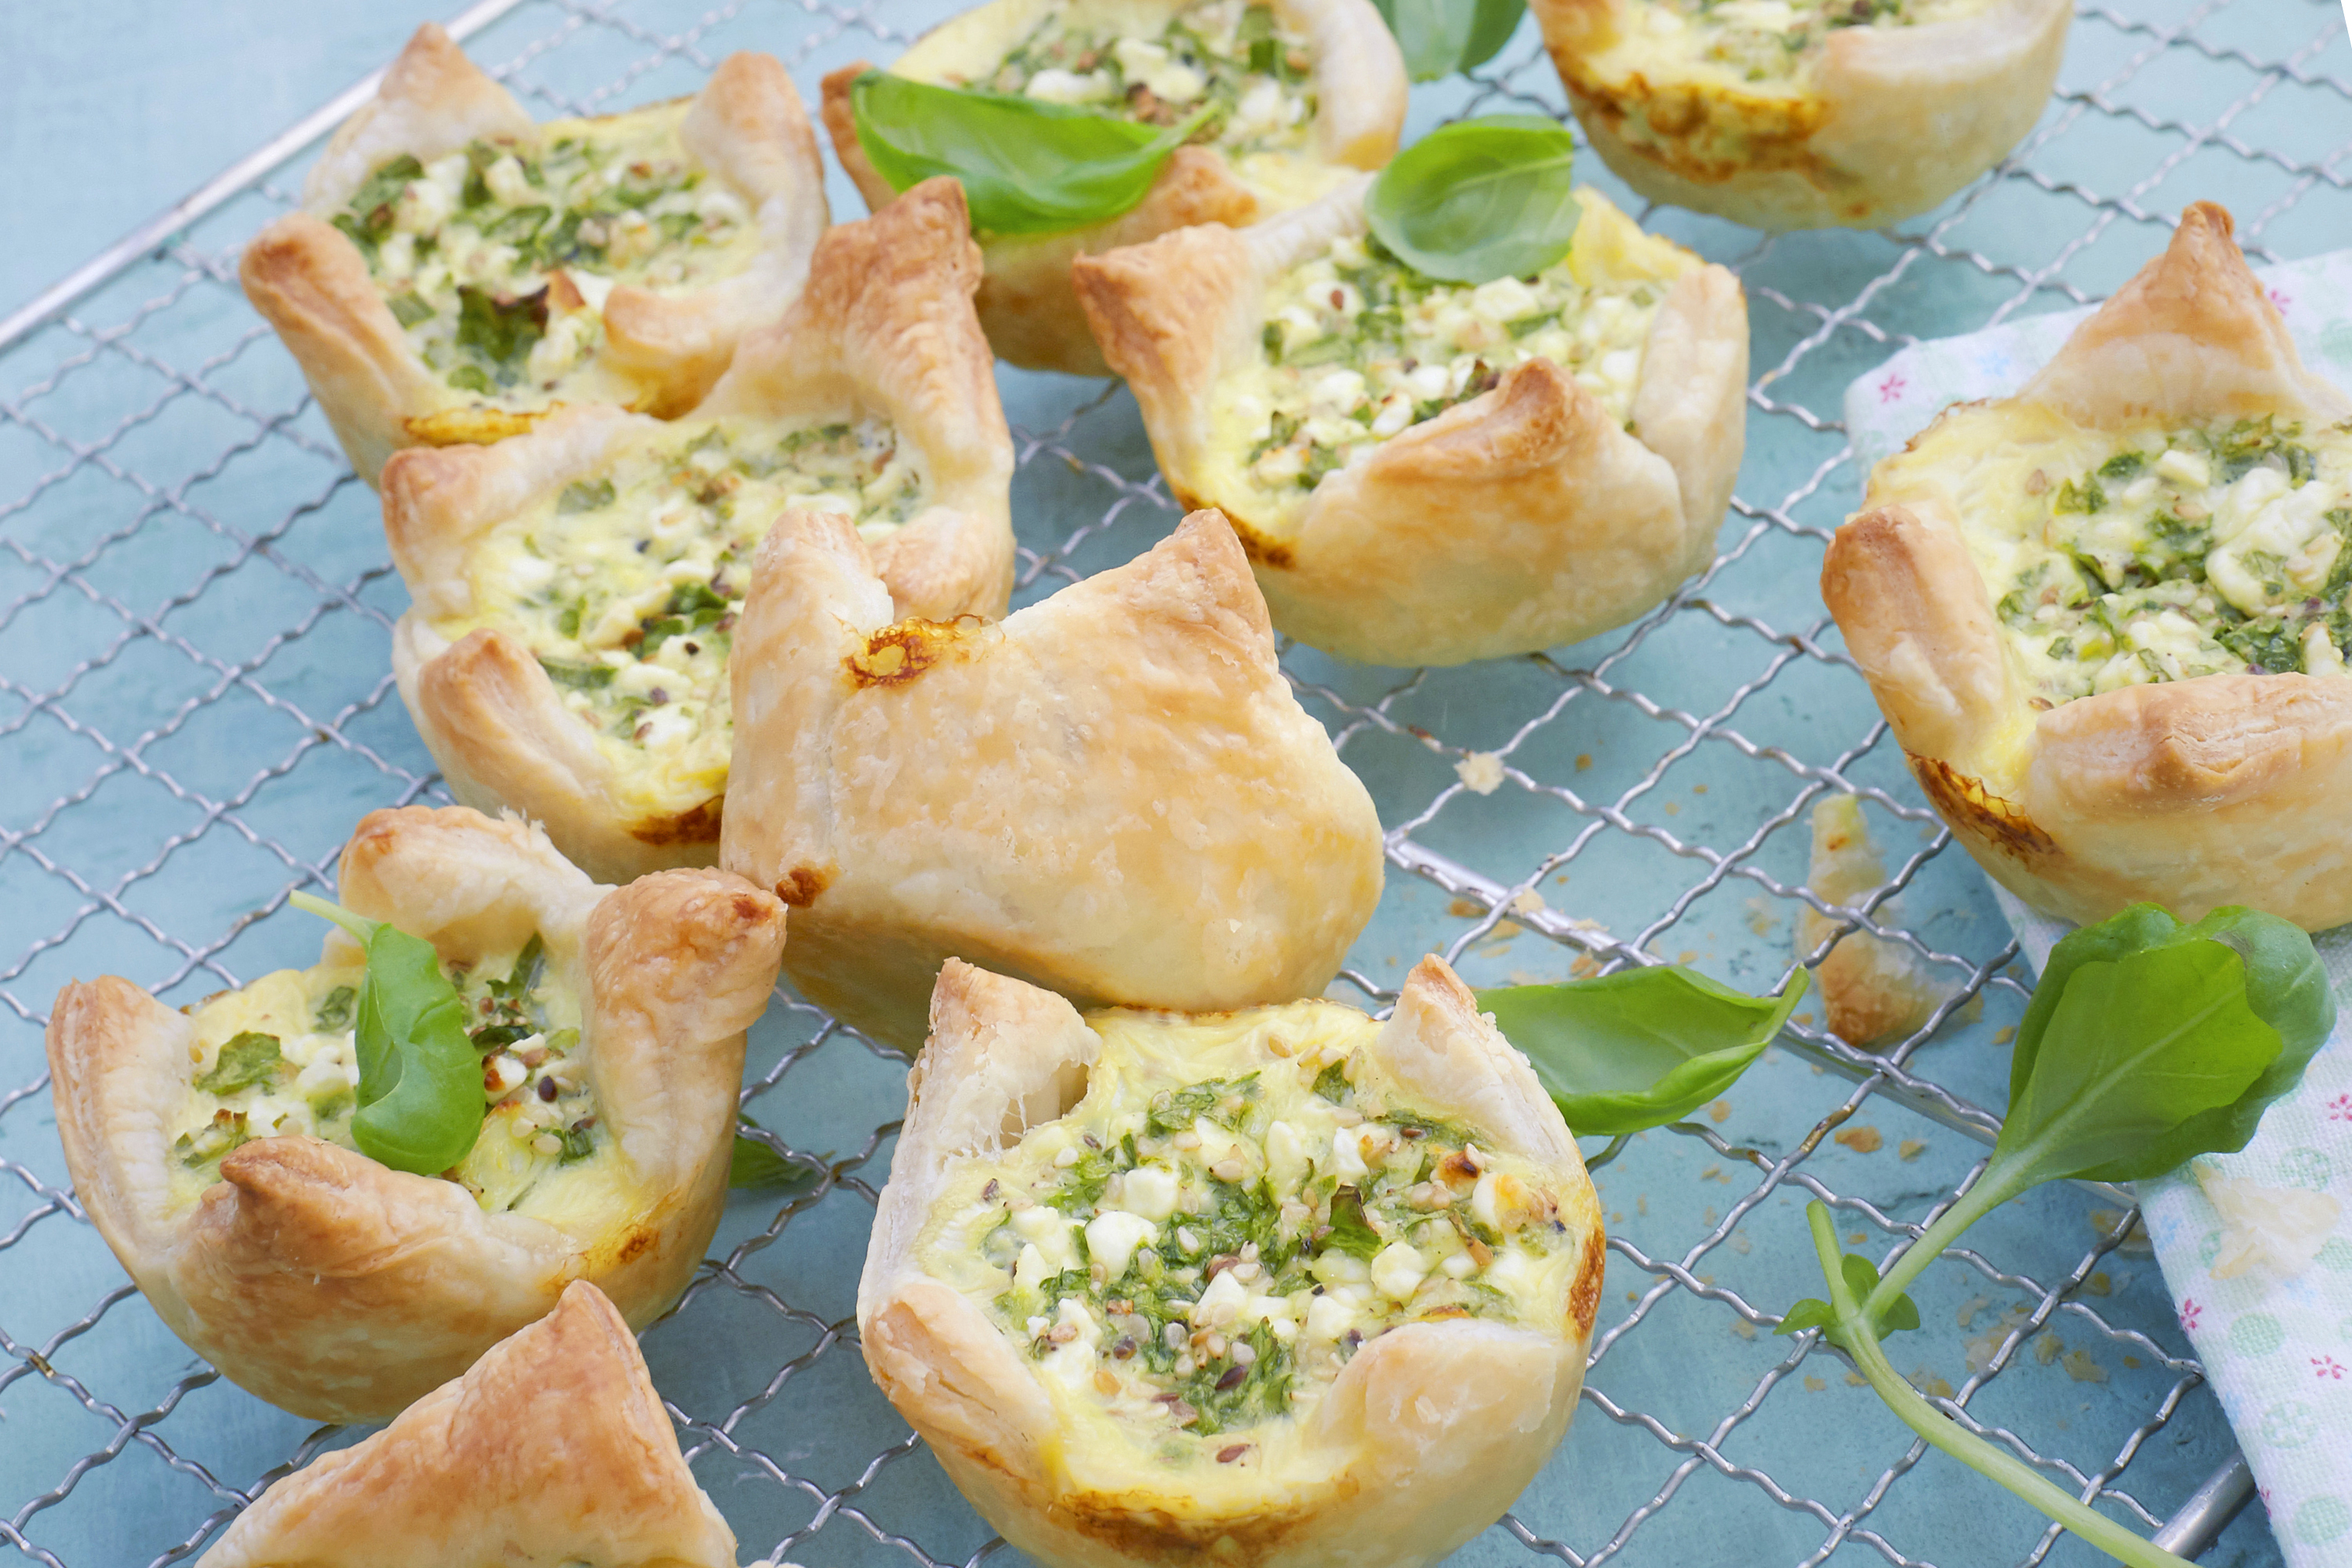 Savoury Puff Pastry Spinach-and-Pesto Bites Image 2